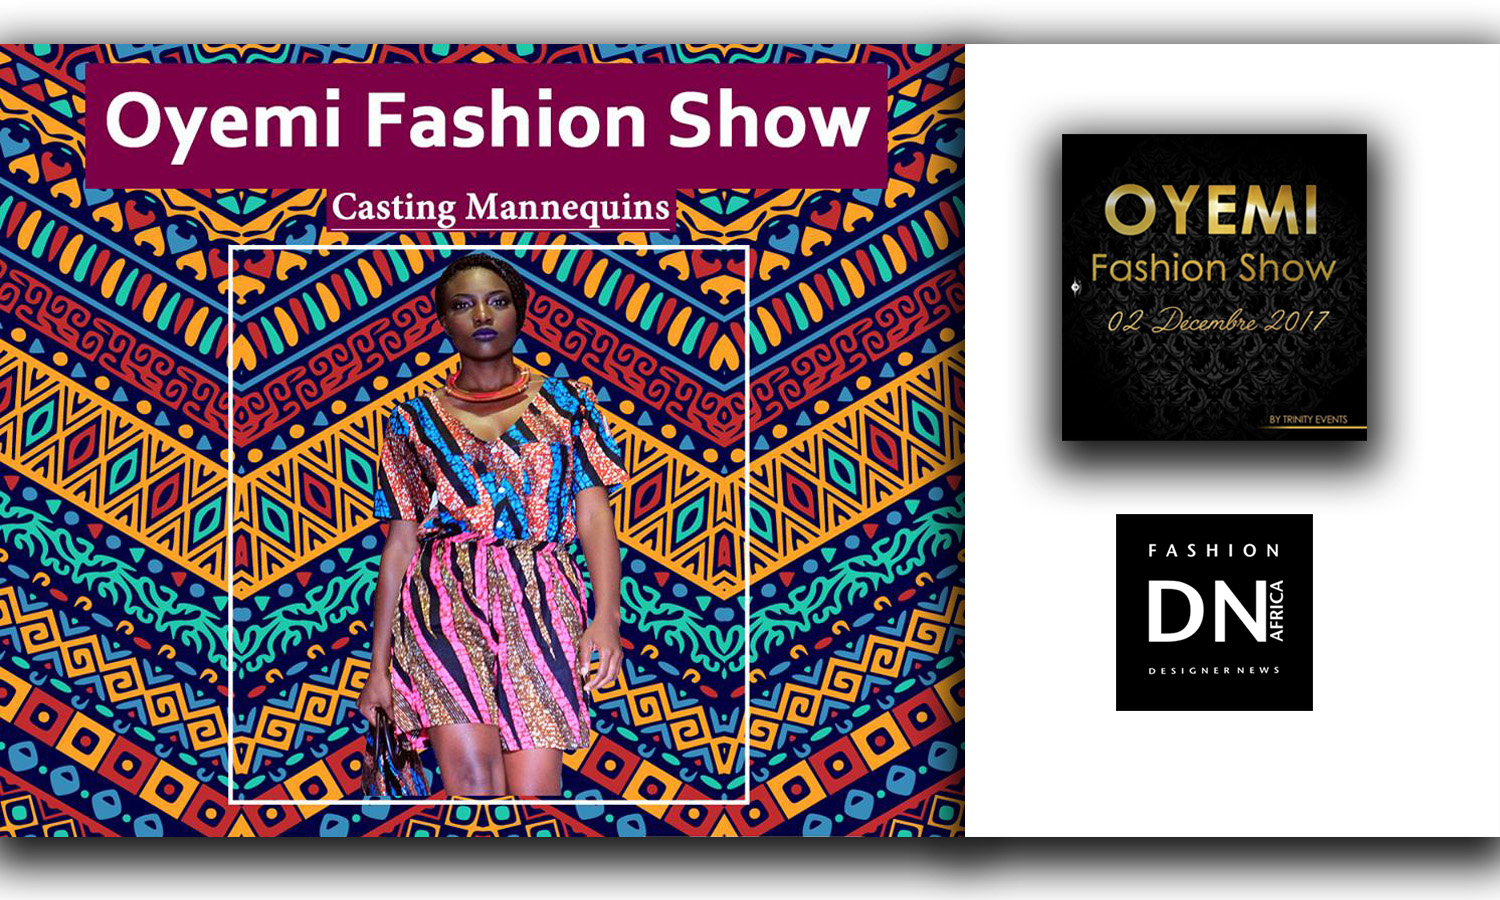 DNAFRICA-DN AFRICA-OYEMI FASHION WEEK-2017